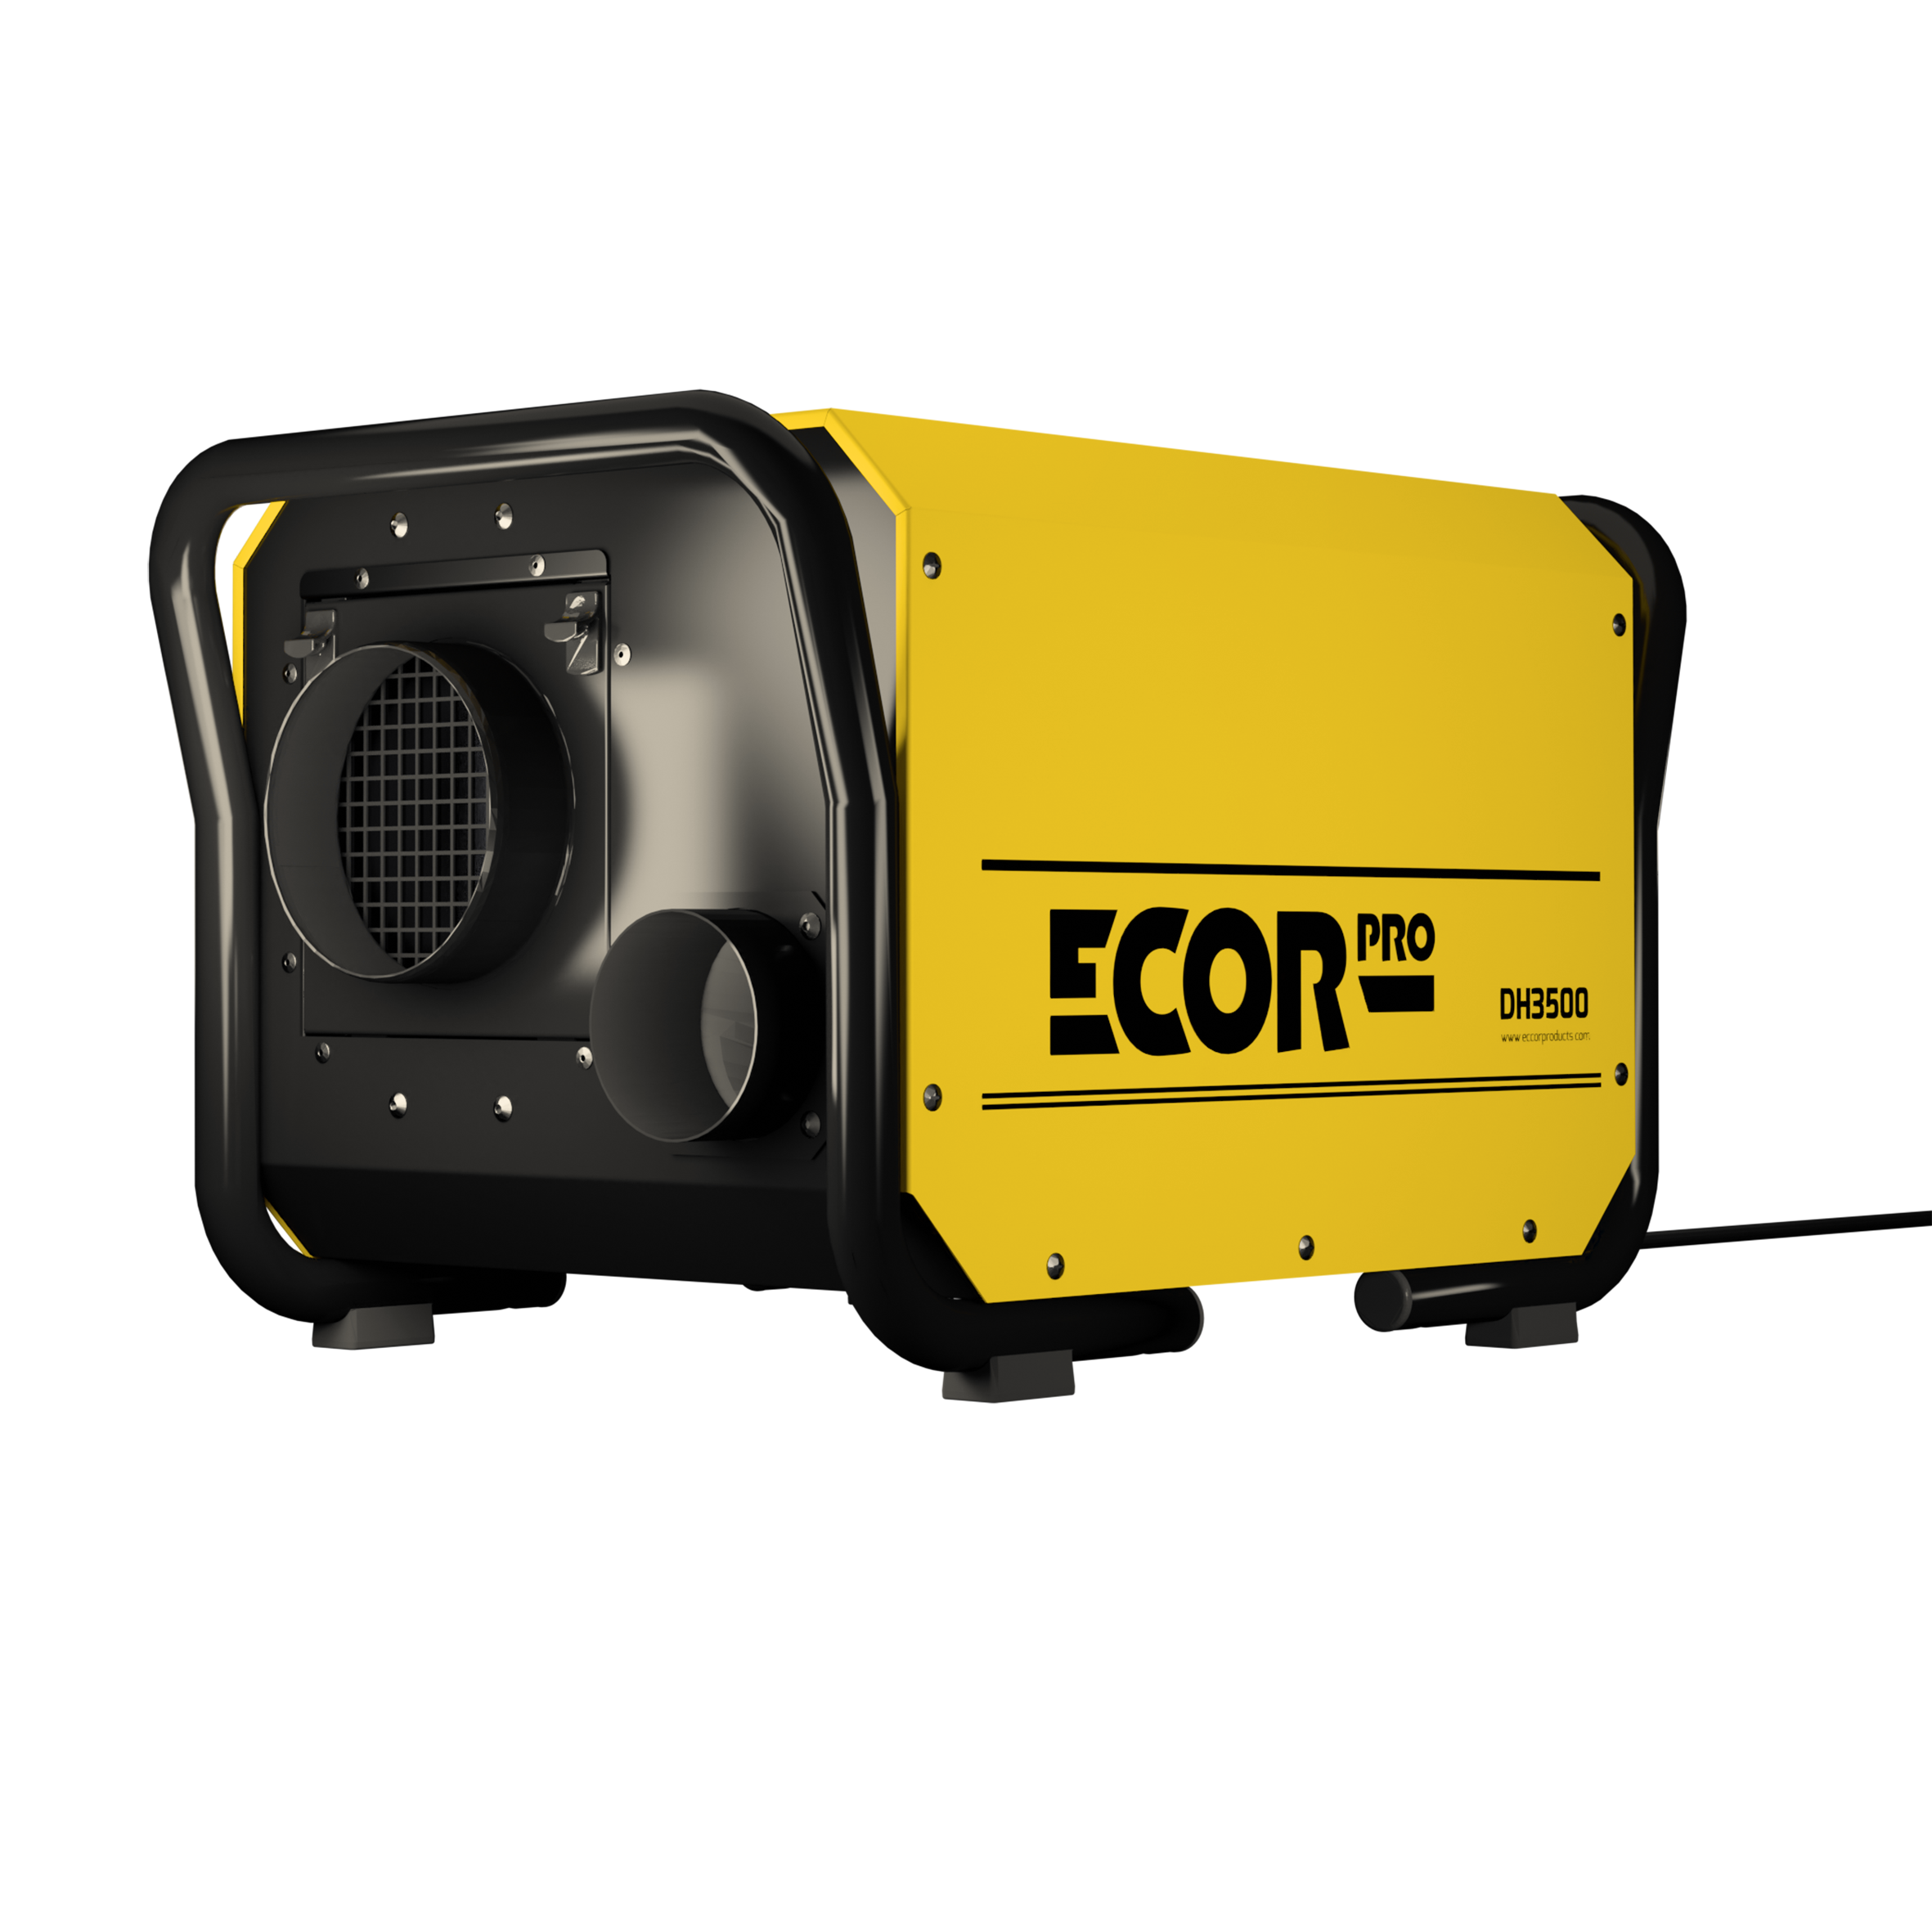 dh3500 side dehumidifiers by Ecor Pro